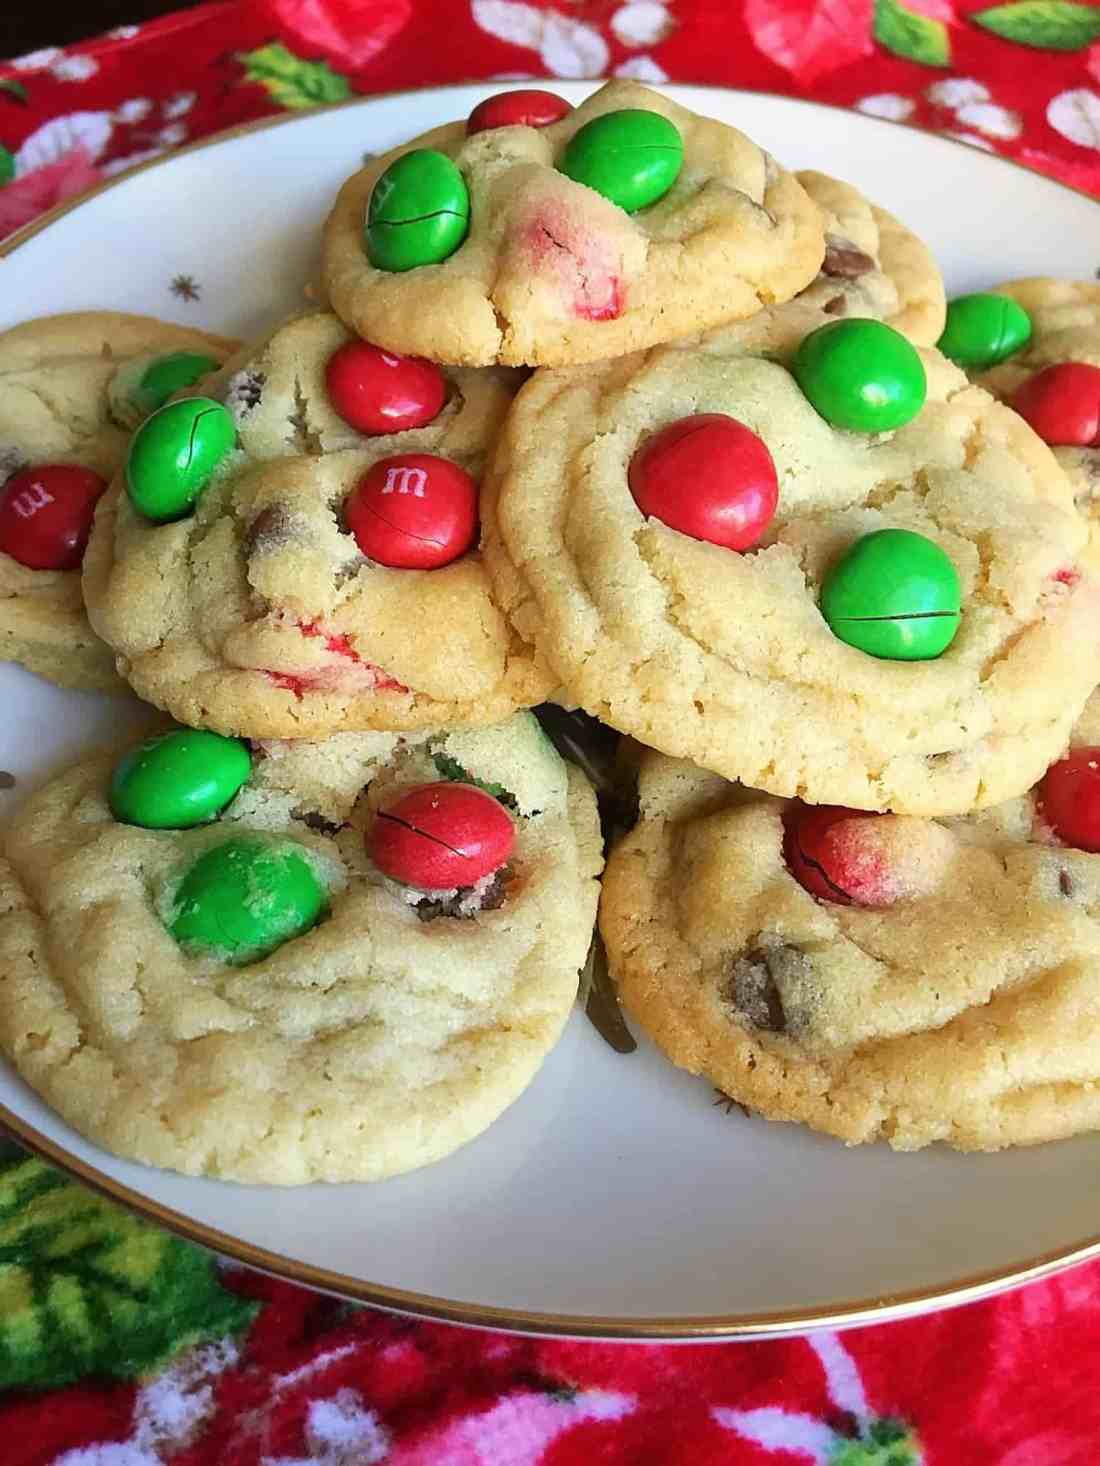 These Magical Peanut Butter M&M Christmas Cookies are the perfect Christmas cookies for family Christmas parties or for Santa! Chocolate chips and peanut butter M&M candies make them extra delicious! #christmascookies #m&m #cookies #christmasdessert